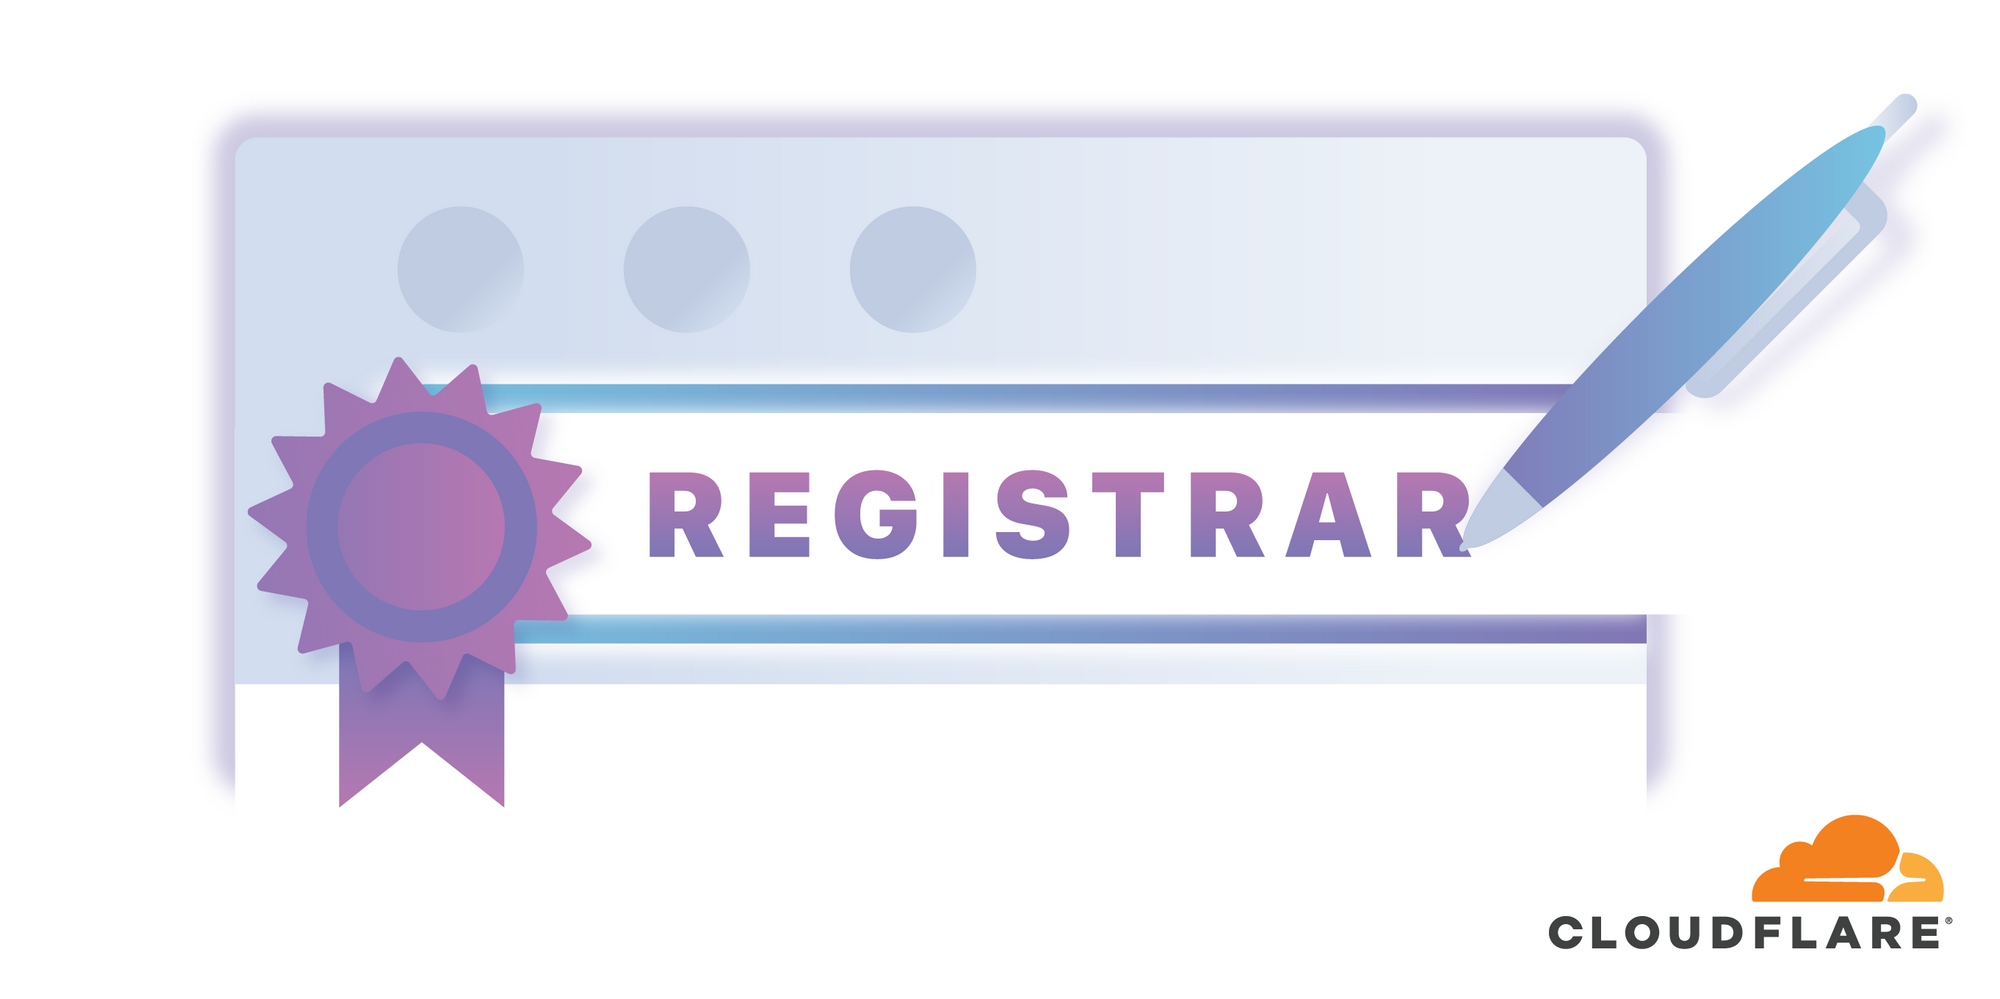 Introducing Cloudflare Registrar: Domain Registration You Can Love